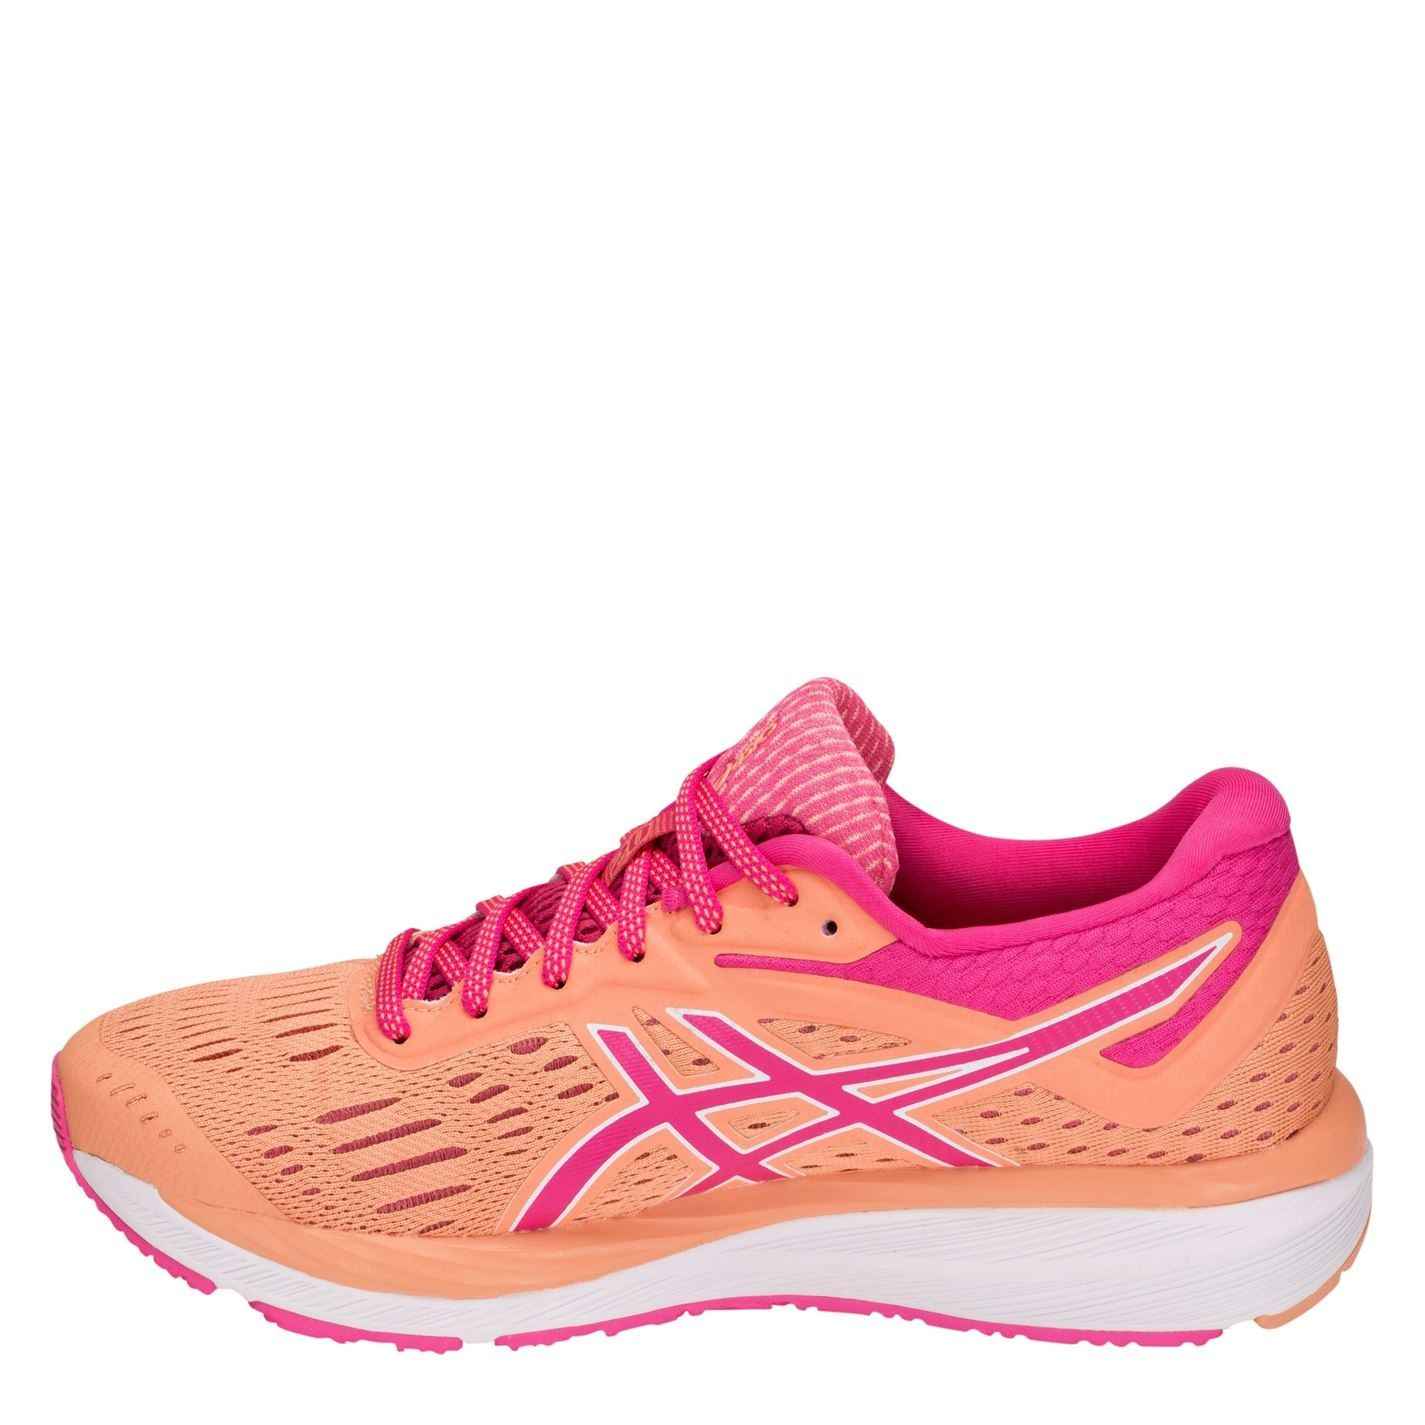 Asics Womens Gel Cumulus 20 Trainers Sneakers Training Running Gym Sports Shoes